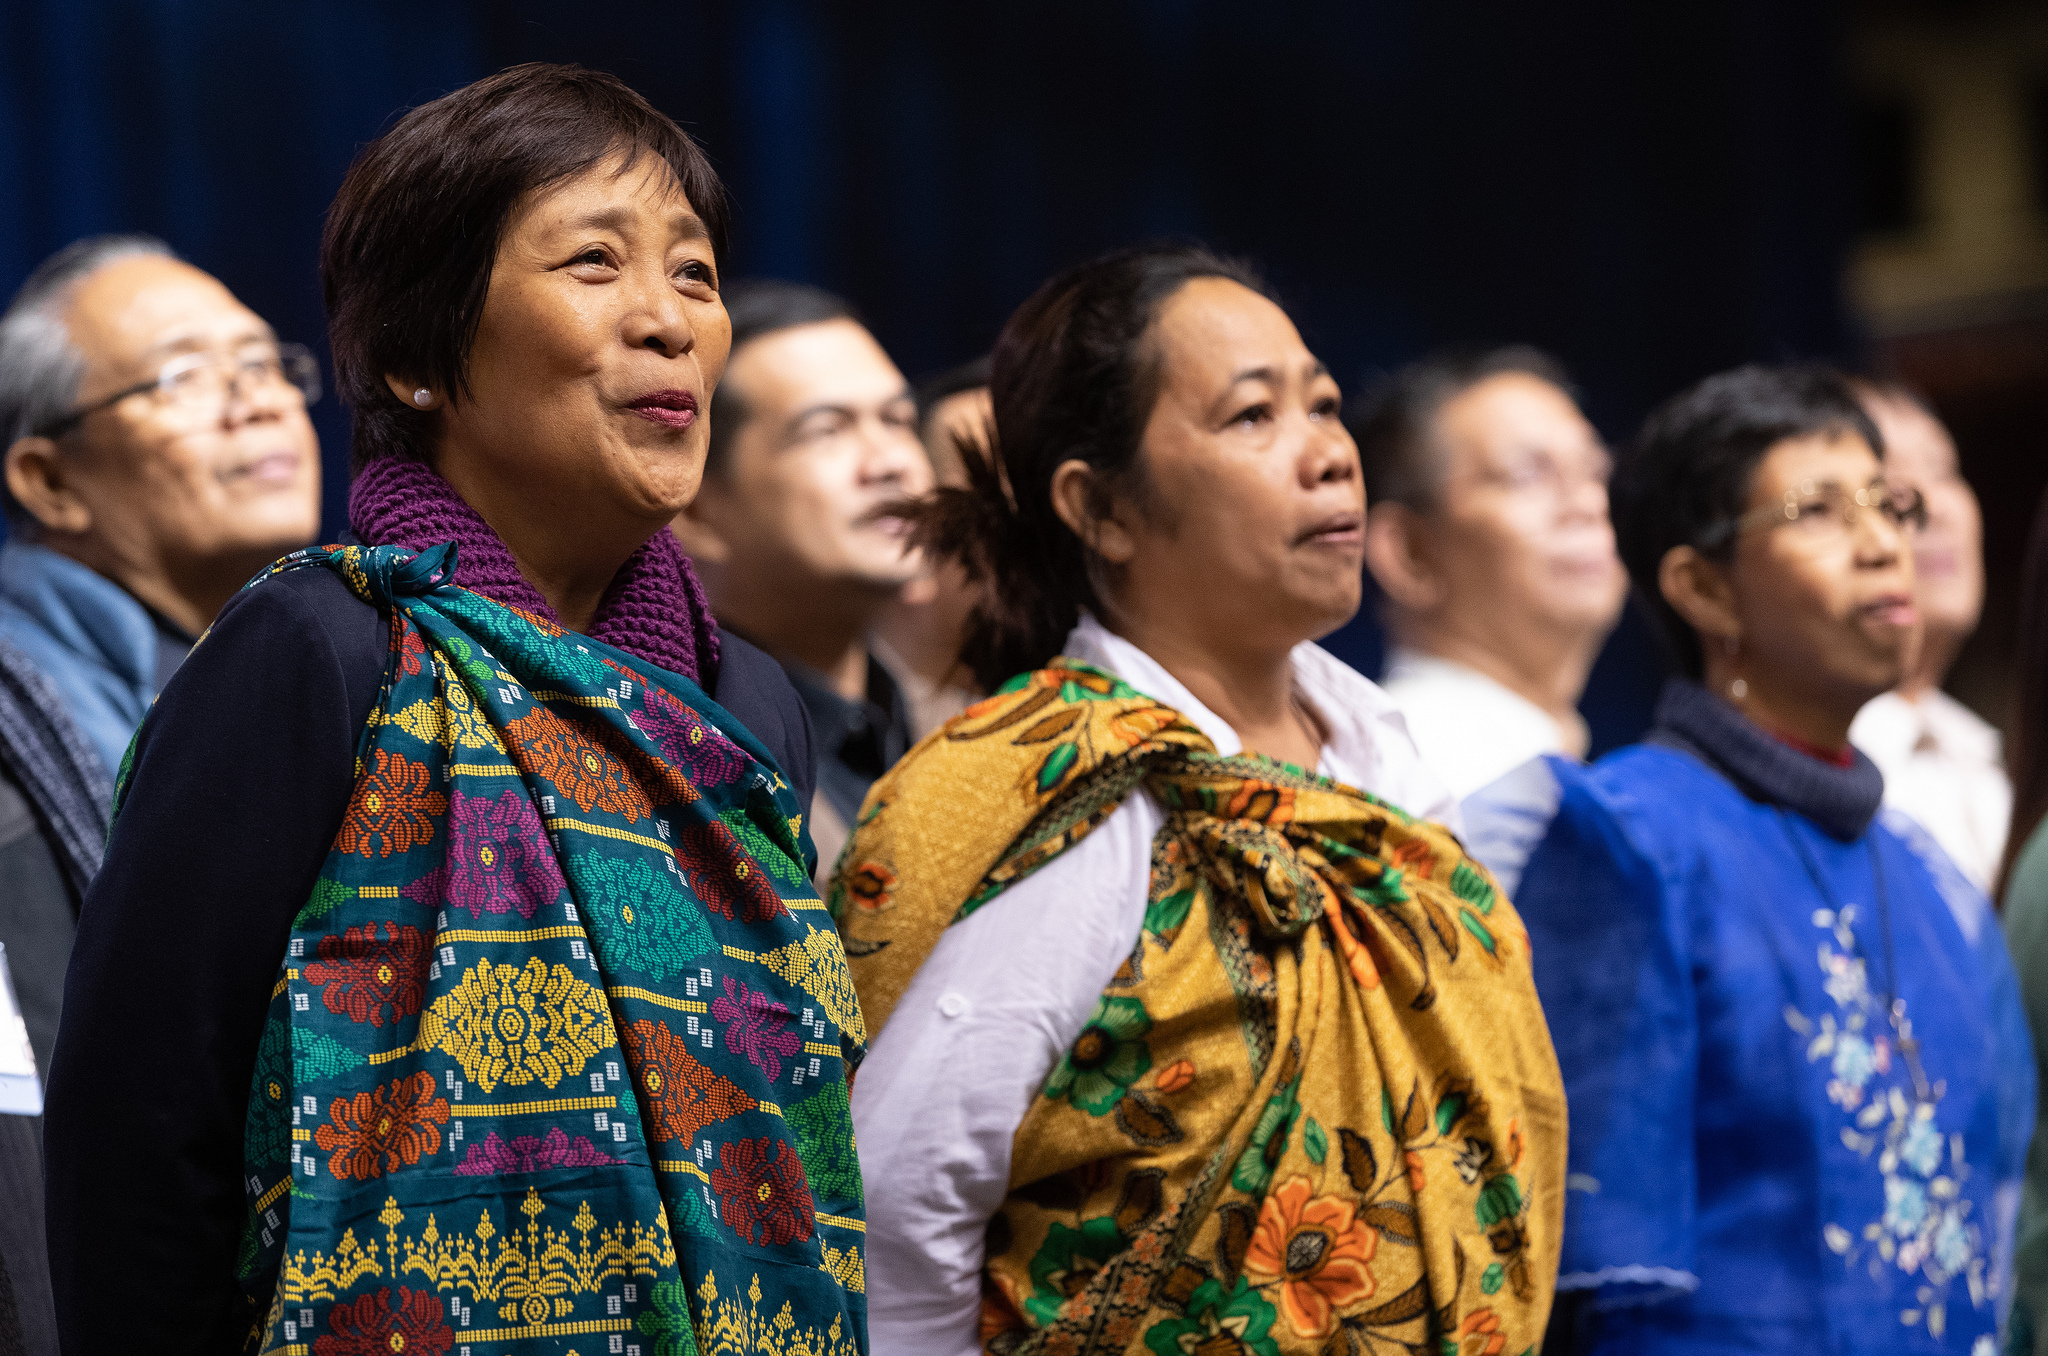 (From left) Julia Stukalova and Yulia Starodubets (Eastern Russia-Central Asia Provisional), and Marina Yugay (Northwest Russia Provisional) sing during the Feb. 23 morning of prayer at the 2019 Special Session of the United Methodist General Conference in St. Louis. Photo by Kathleen Barry, UMNS.